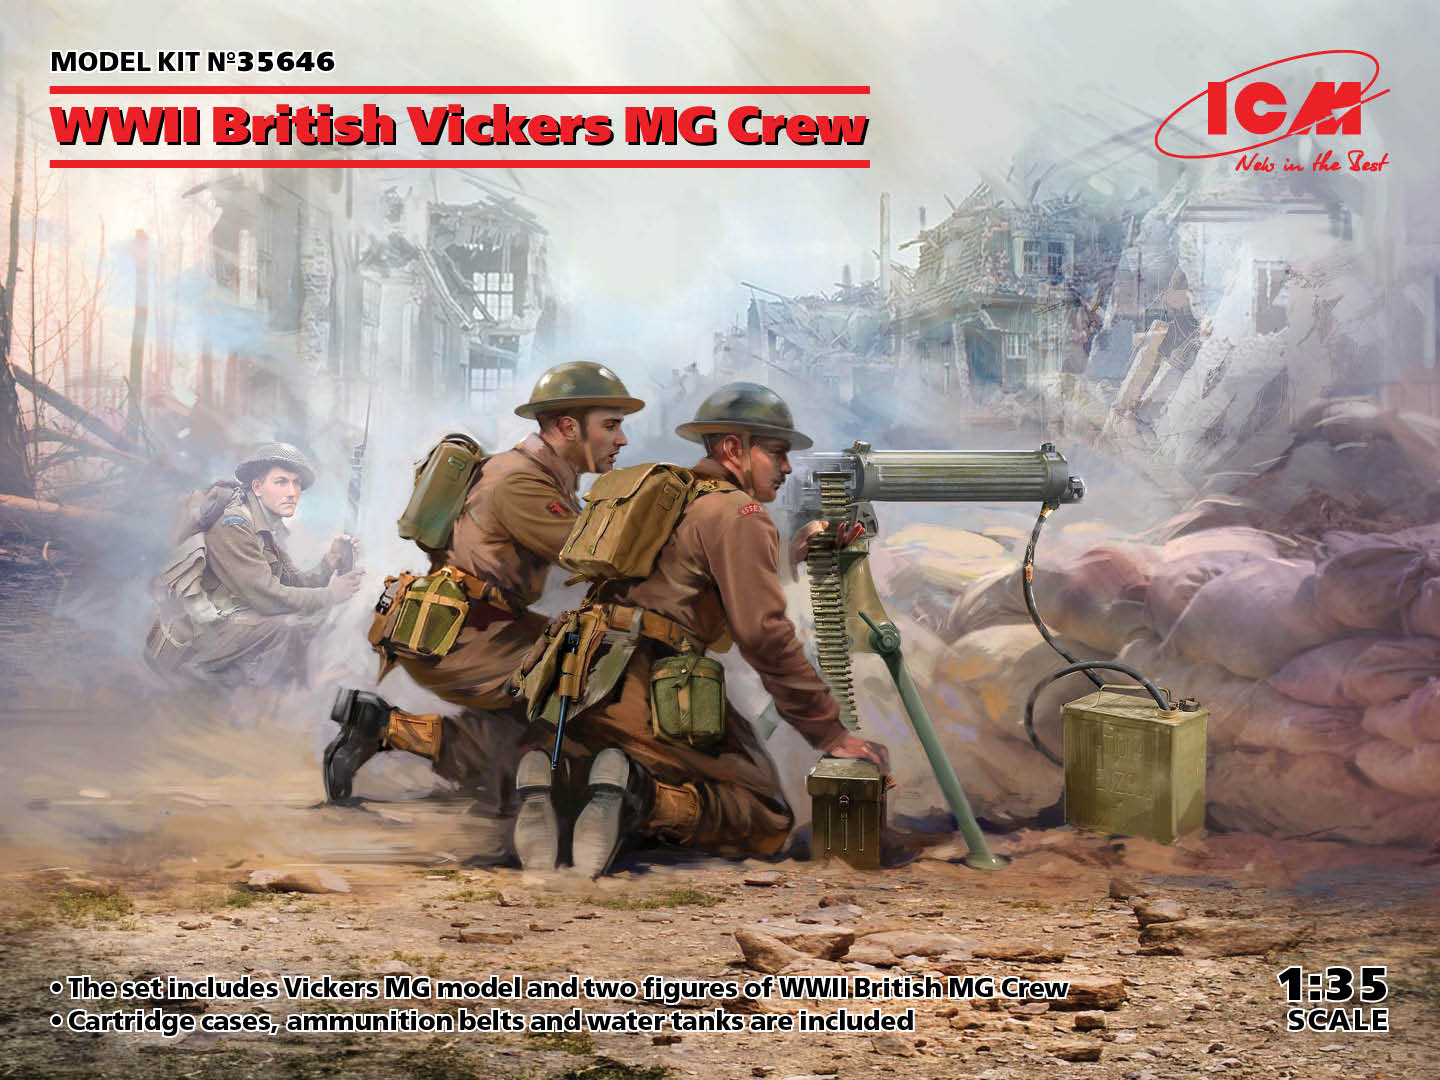 WWII British Vickers MG Crew (Vickers MG & 2 figures) (100% new molds)